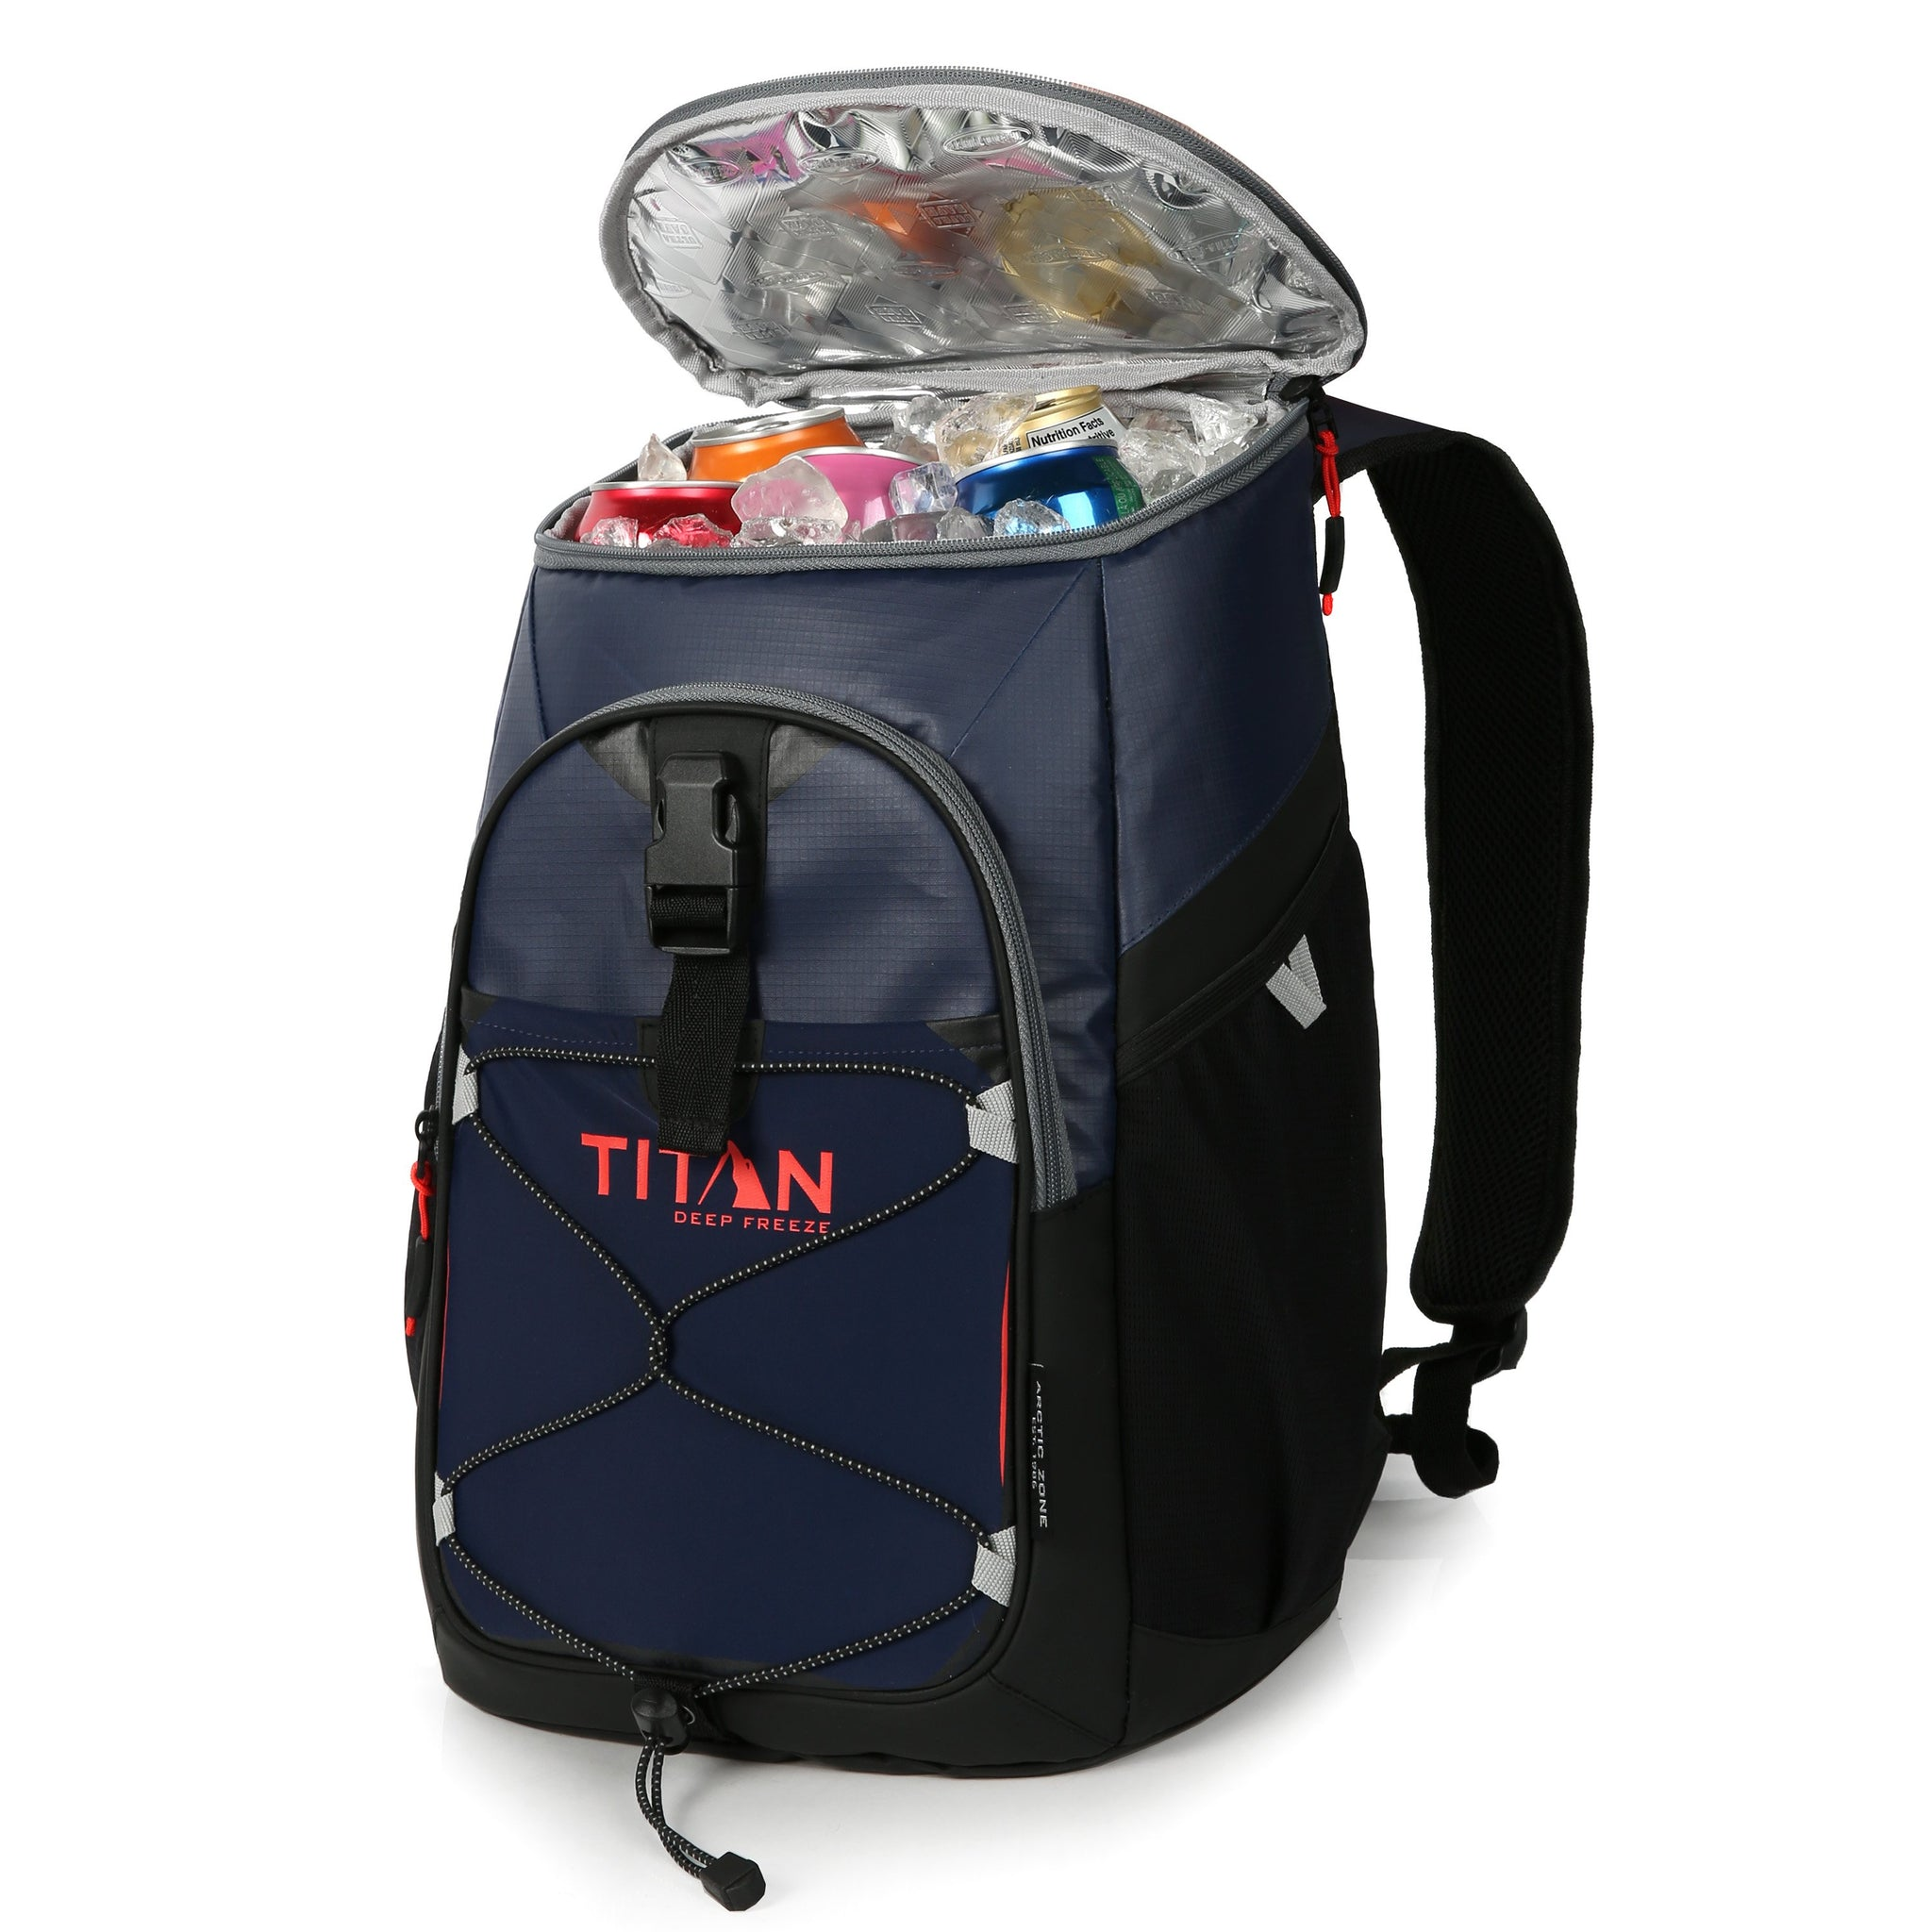 Titan Deep Freeze 24 Can Backpack Cooler(ブルー)